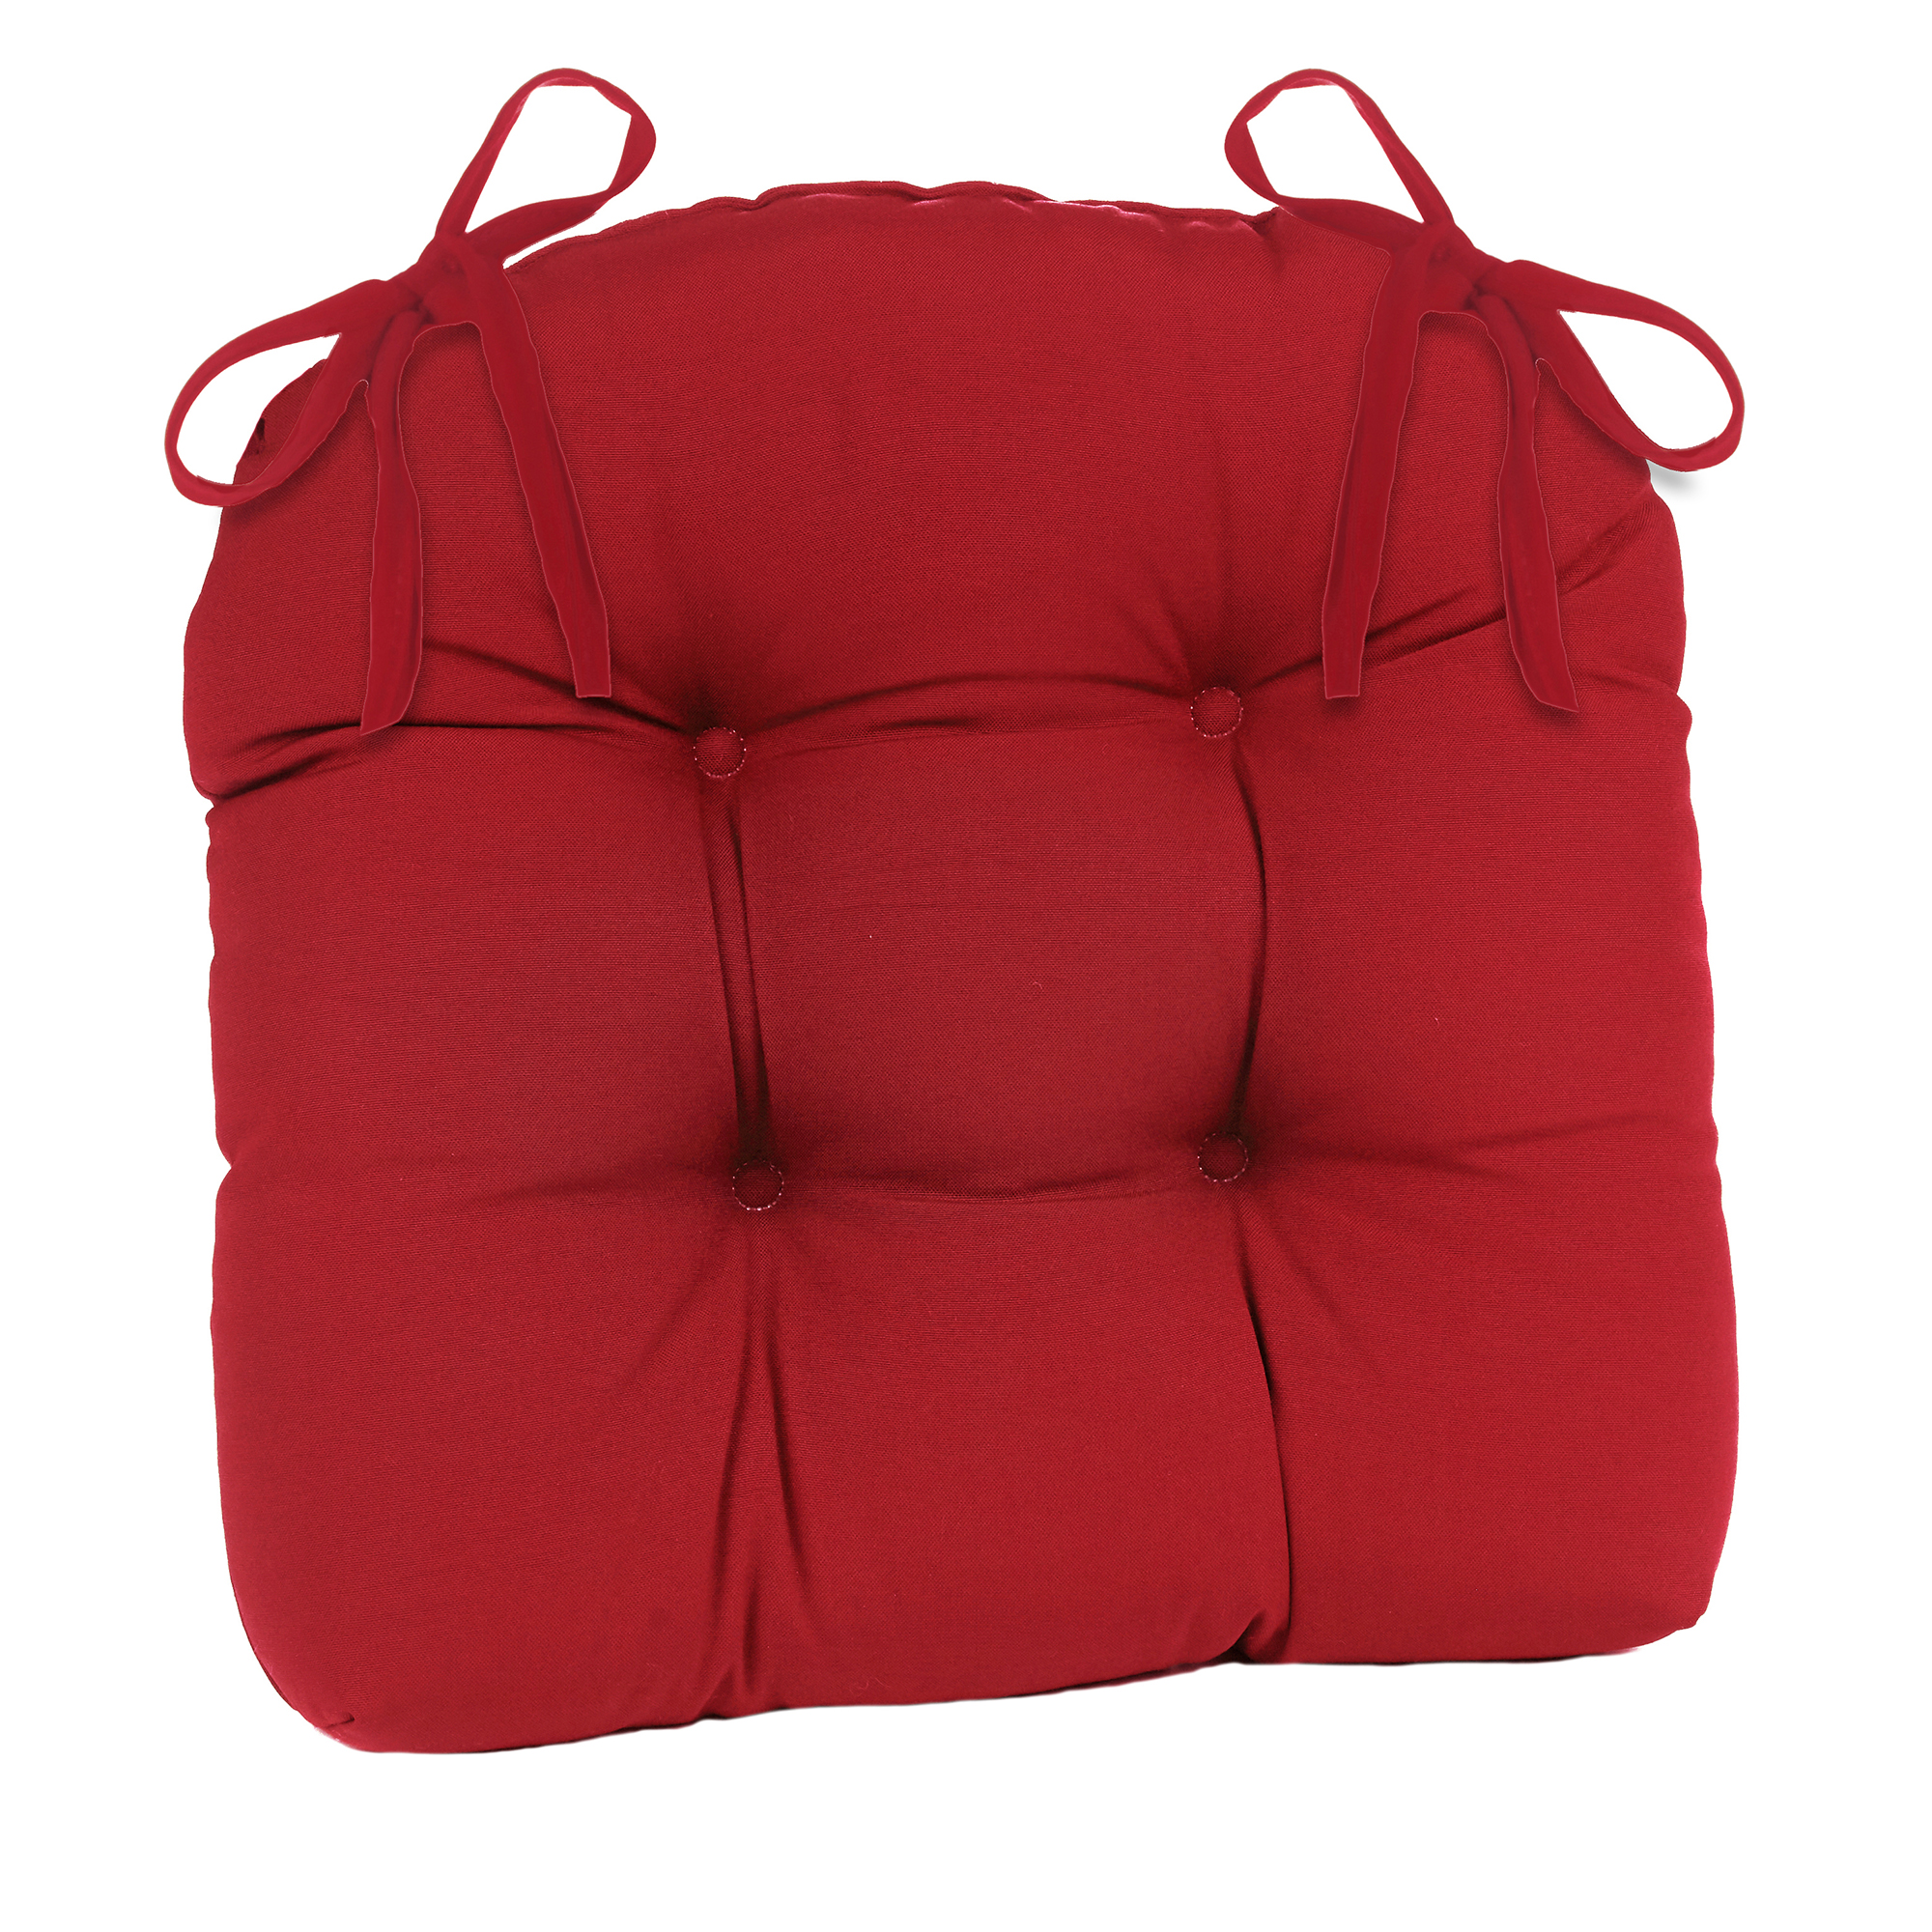 patio outdoor indoor red extra large chair cushion